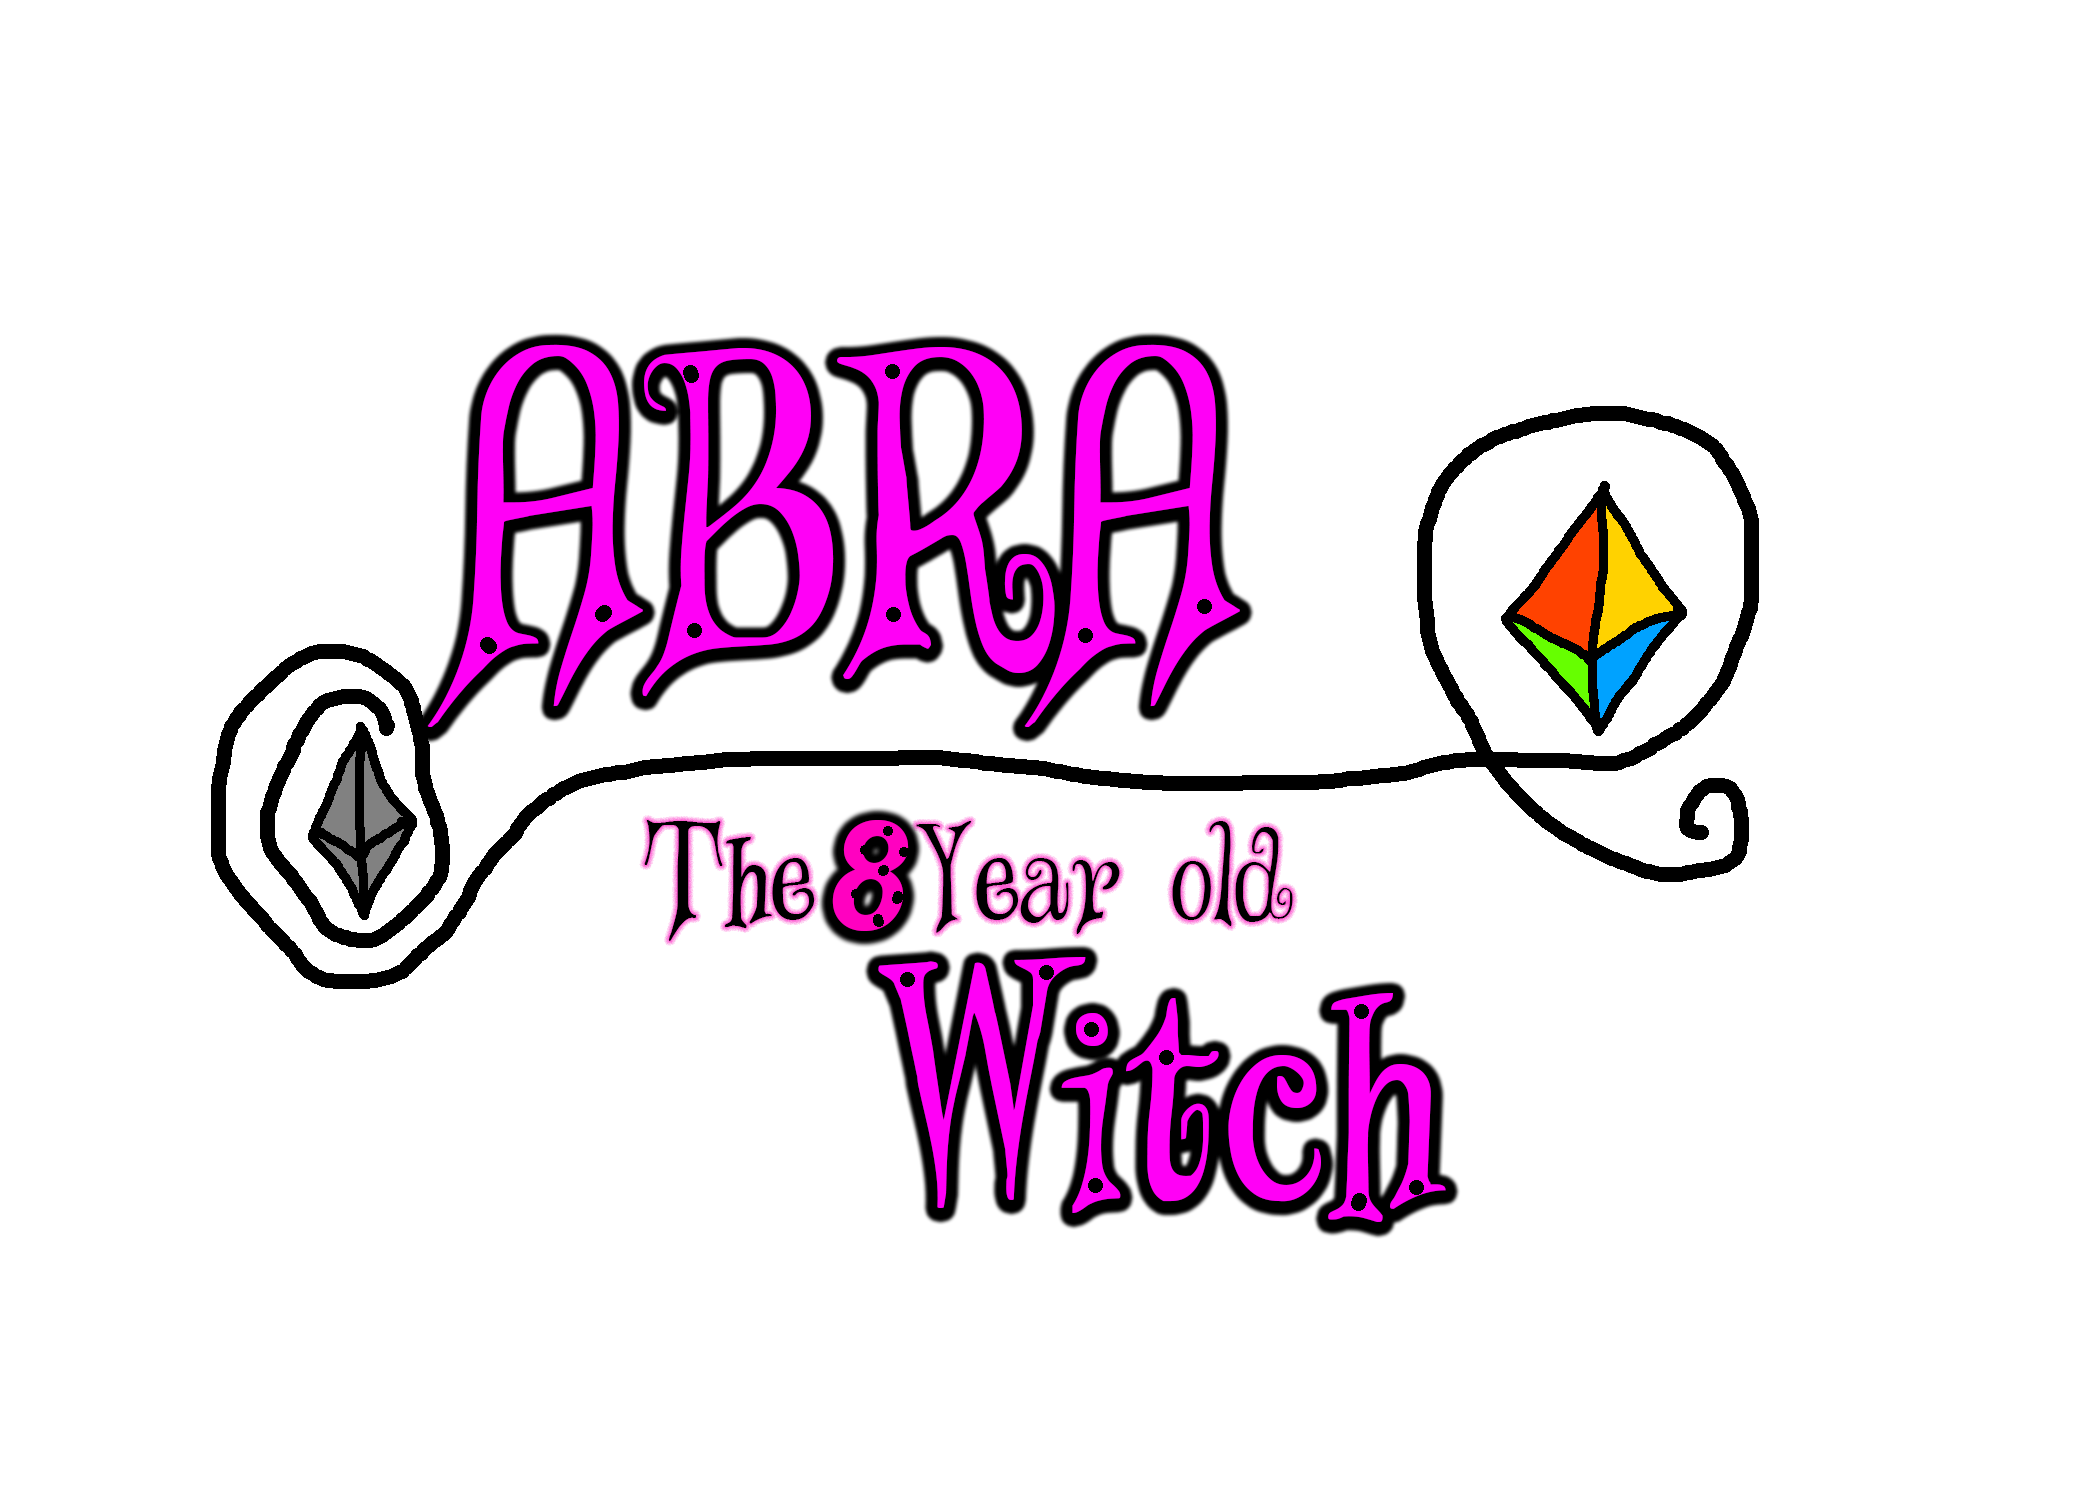 Abra: The 8 Year Old Witch